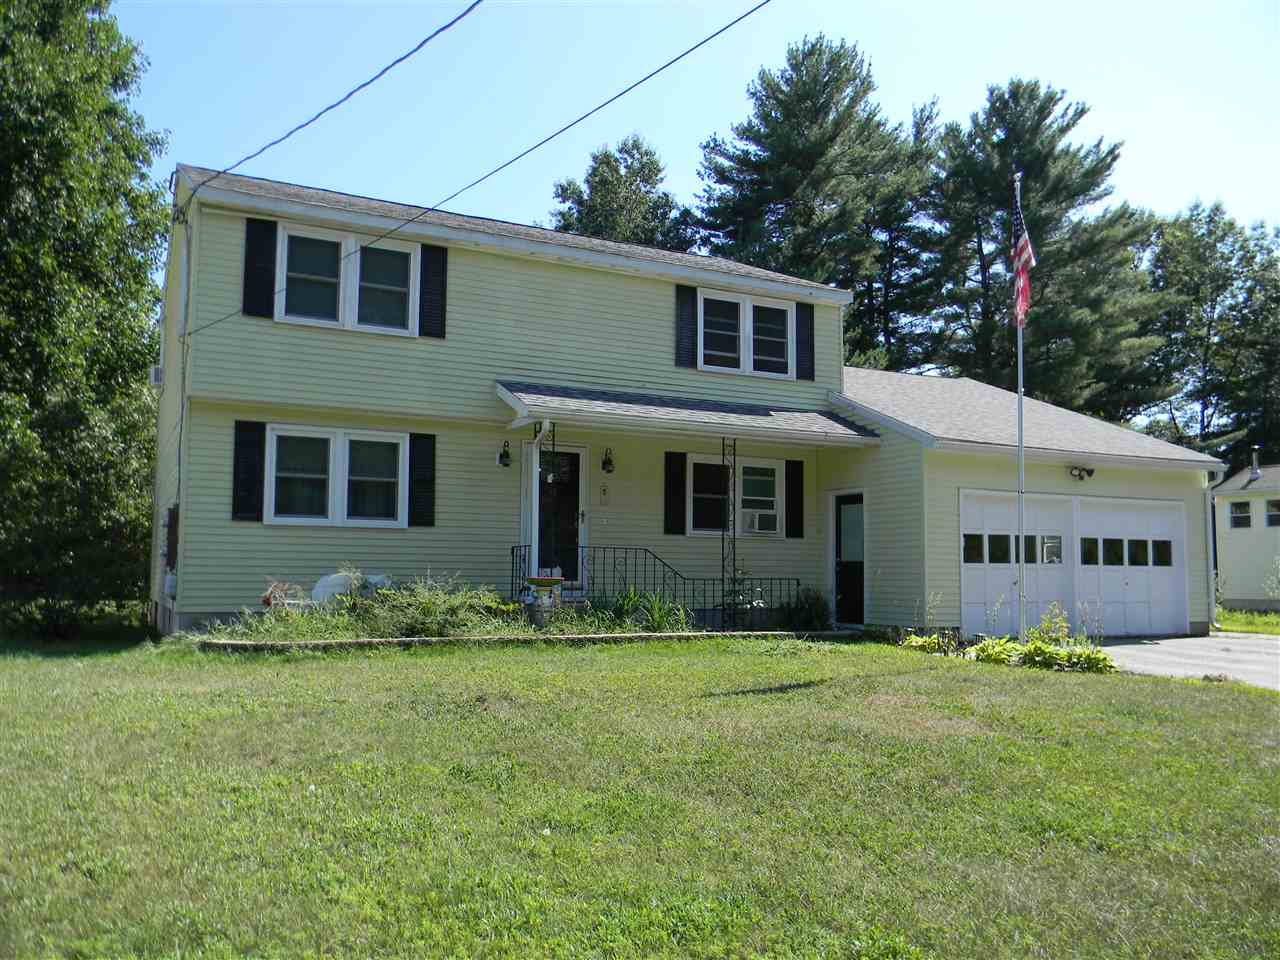 MLS 4772069: 35 Brookside Drive, Merrimack NH